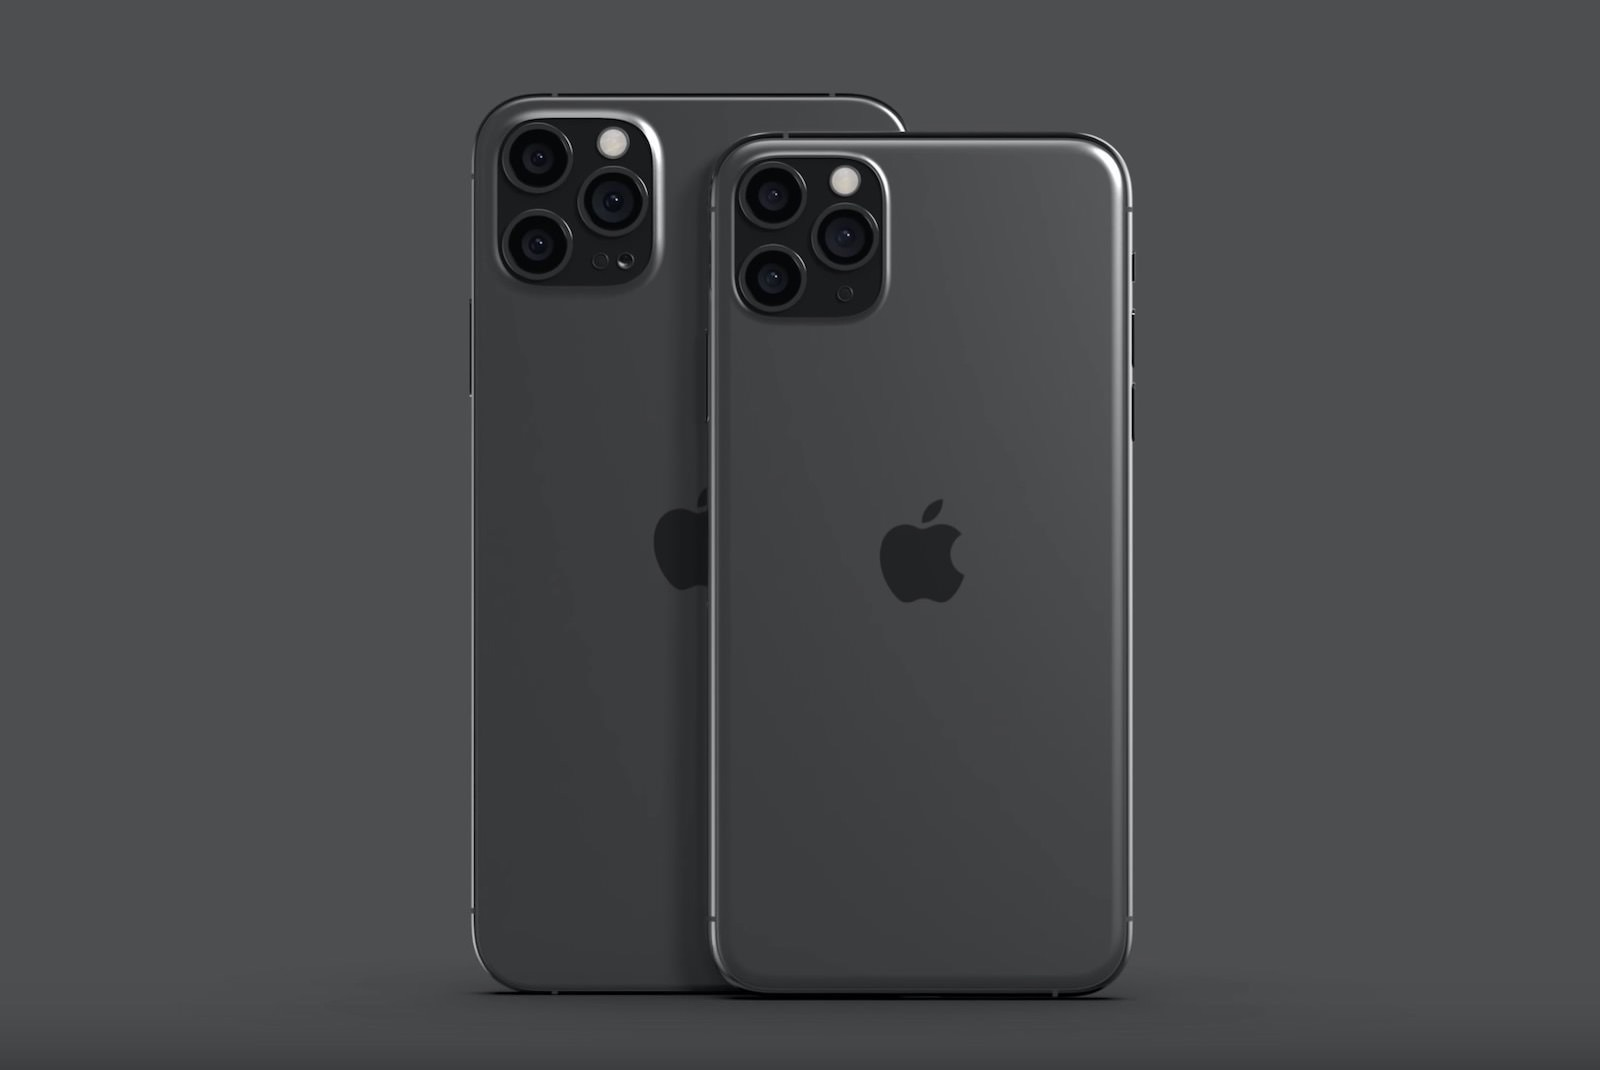 iphone-12-concept-image.jpg